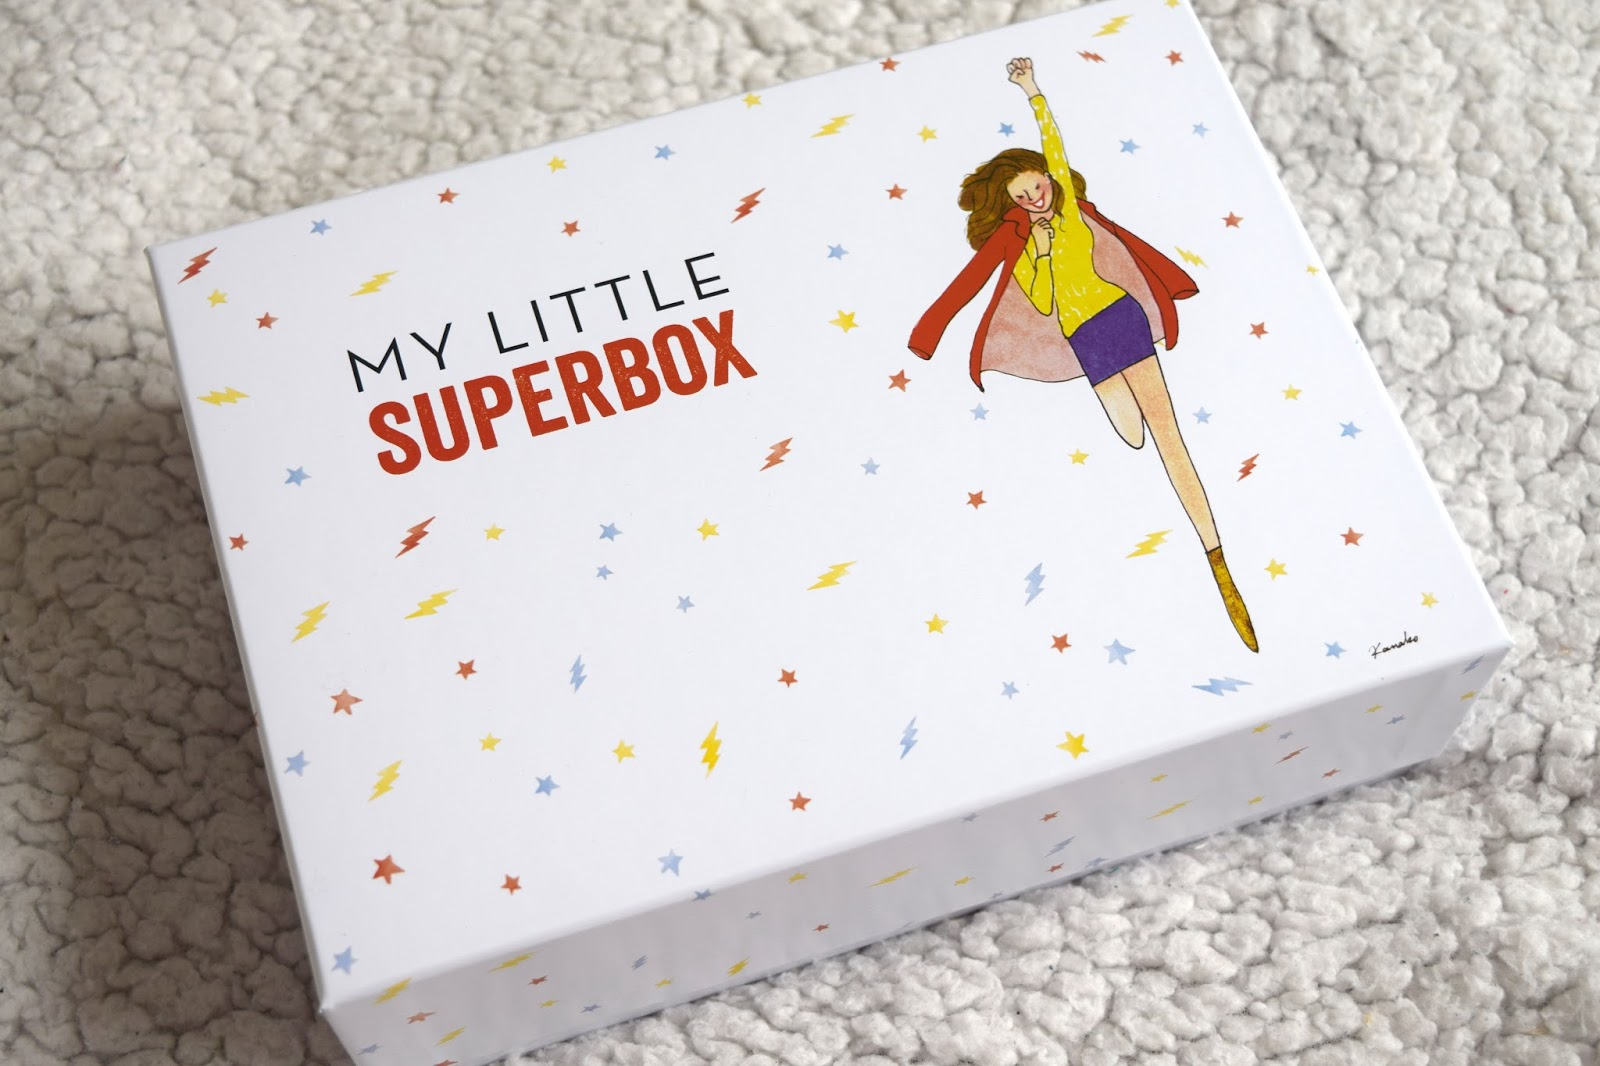 My Little Superbox March 2015